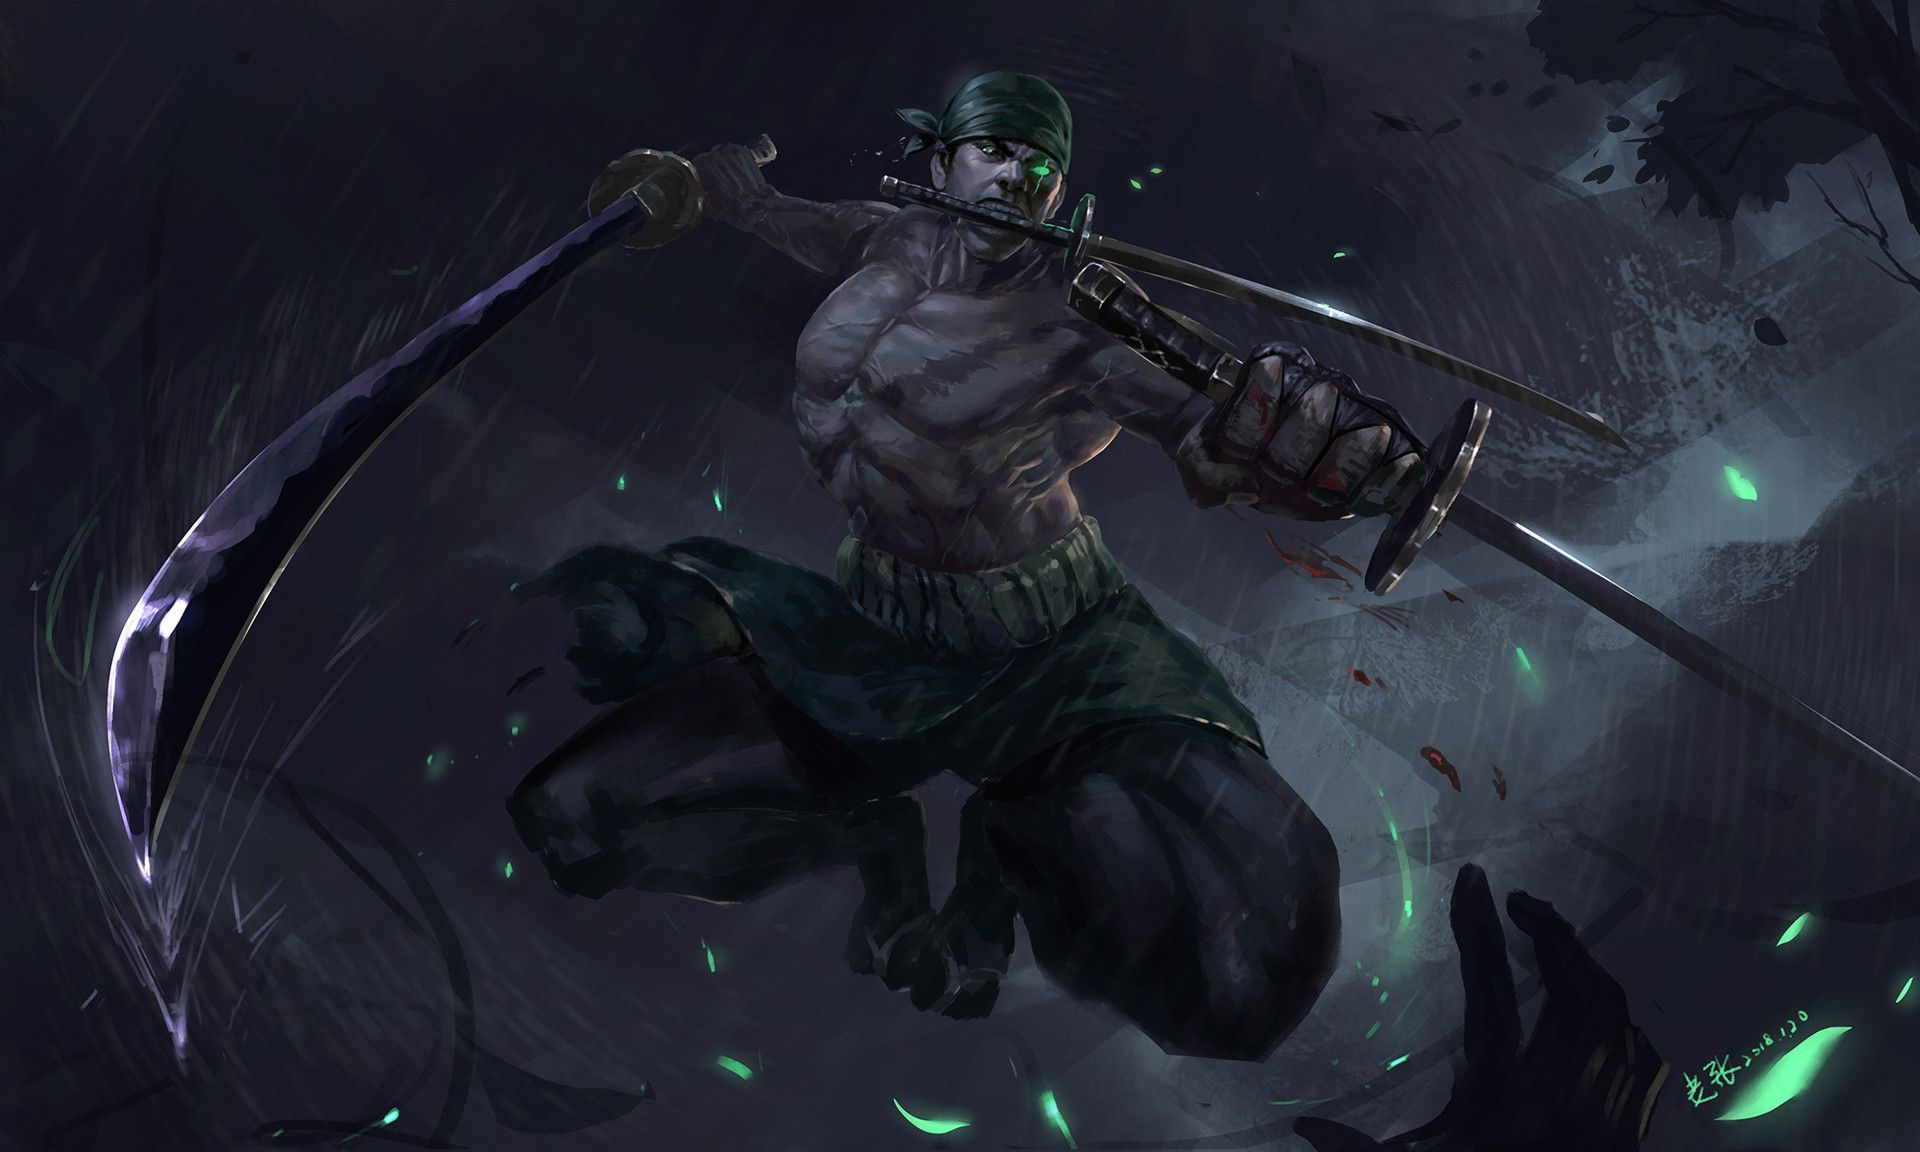 Artstation Roronoa Zoro Old Zhang Roronoa Zoro Anime Wallpaper One Piece Images